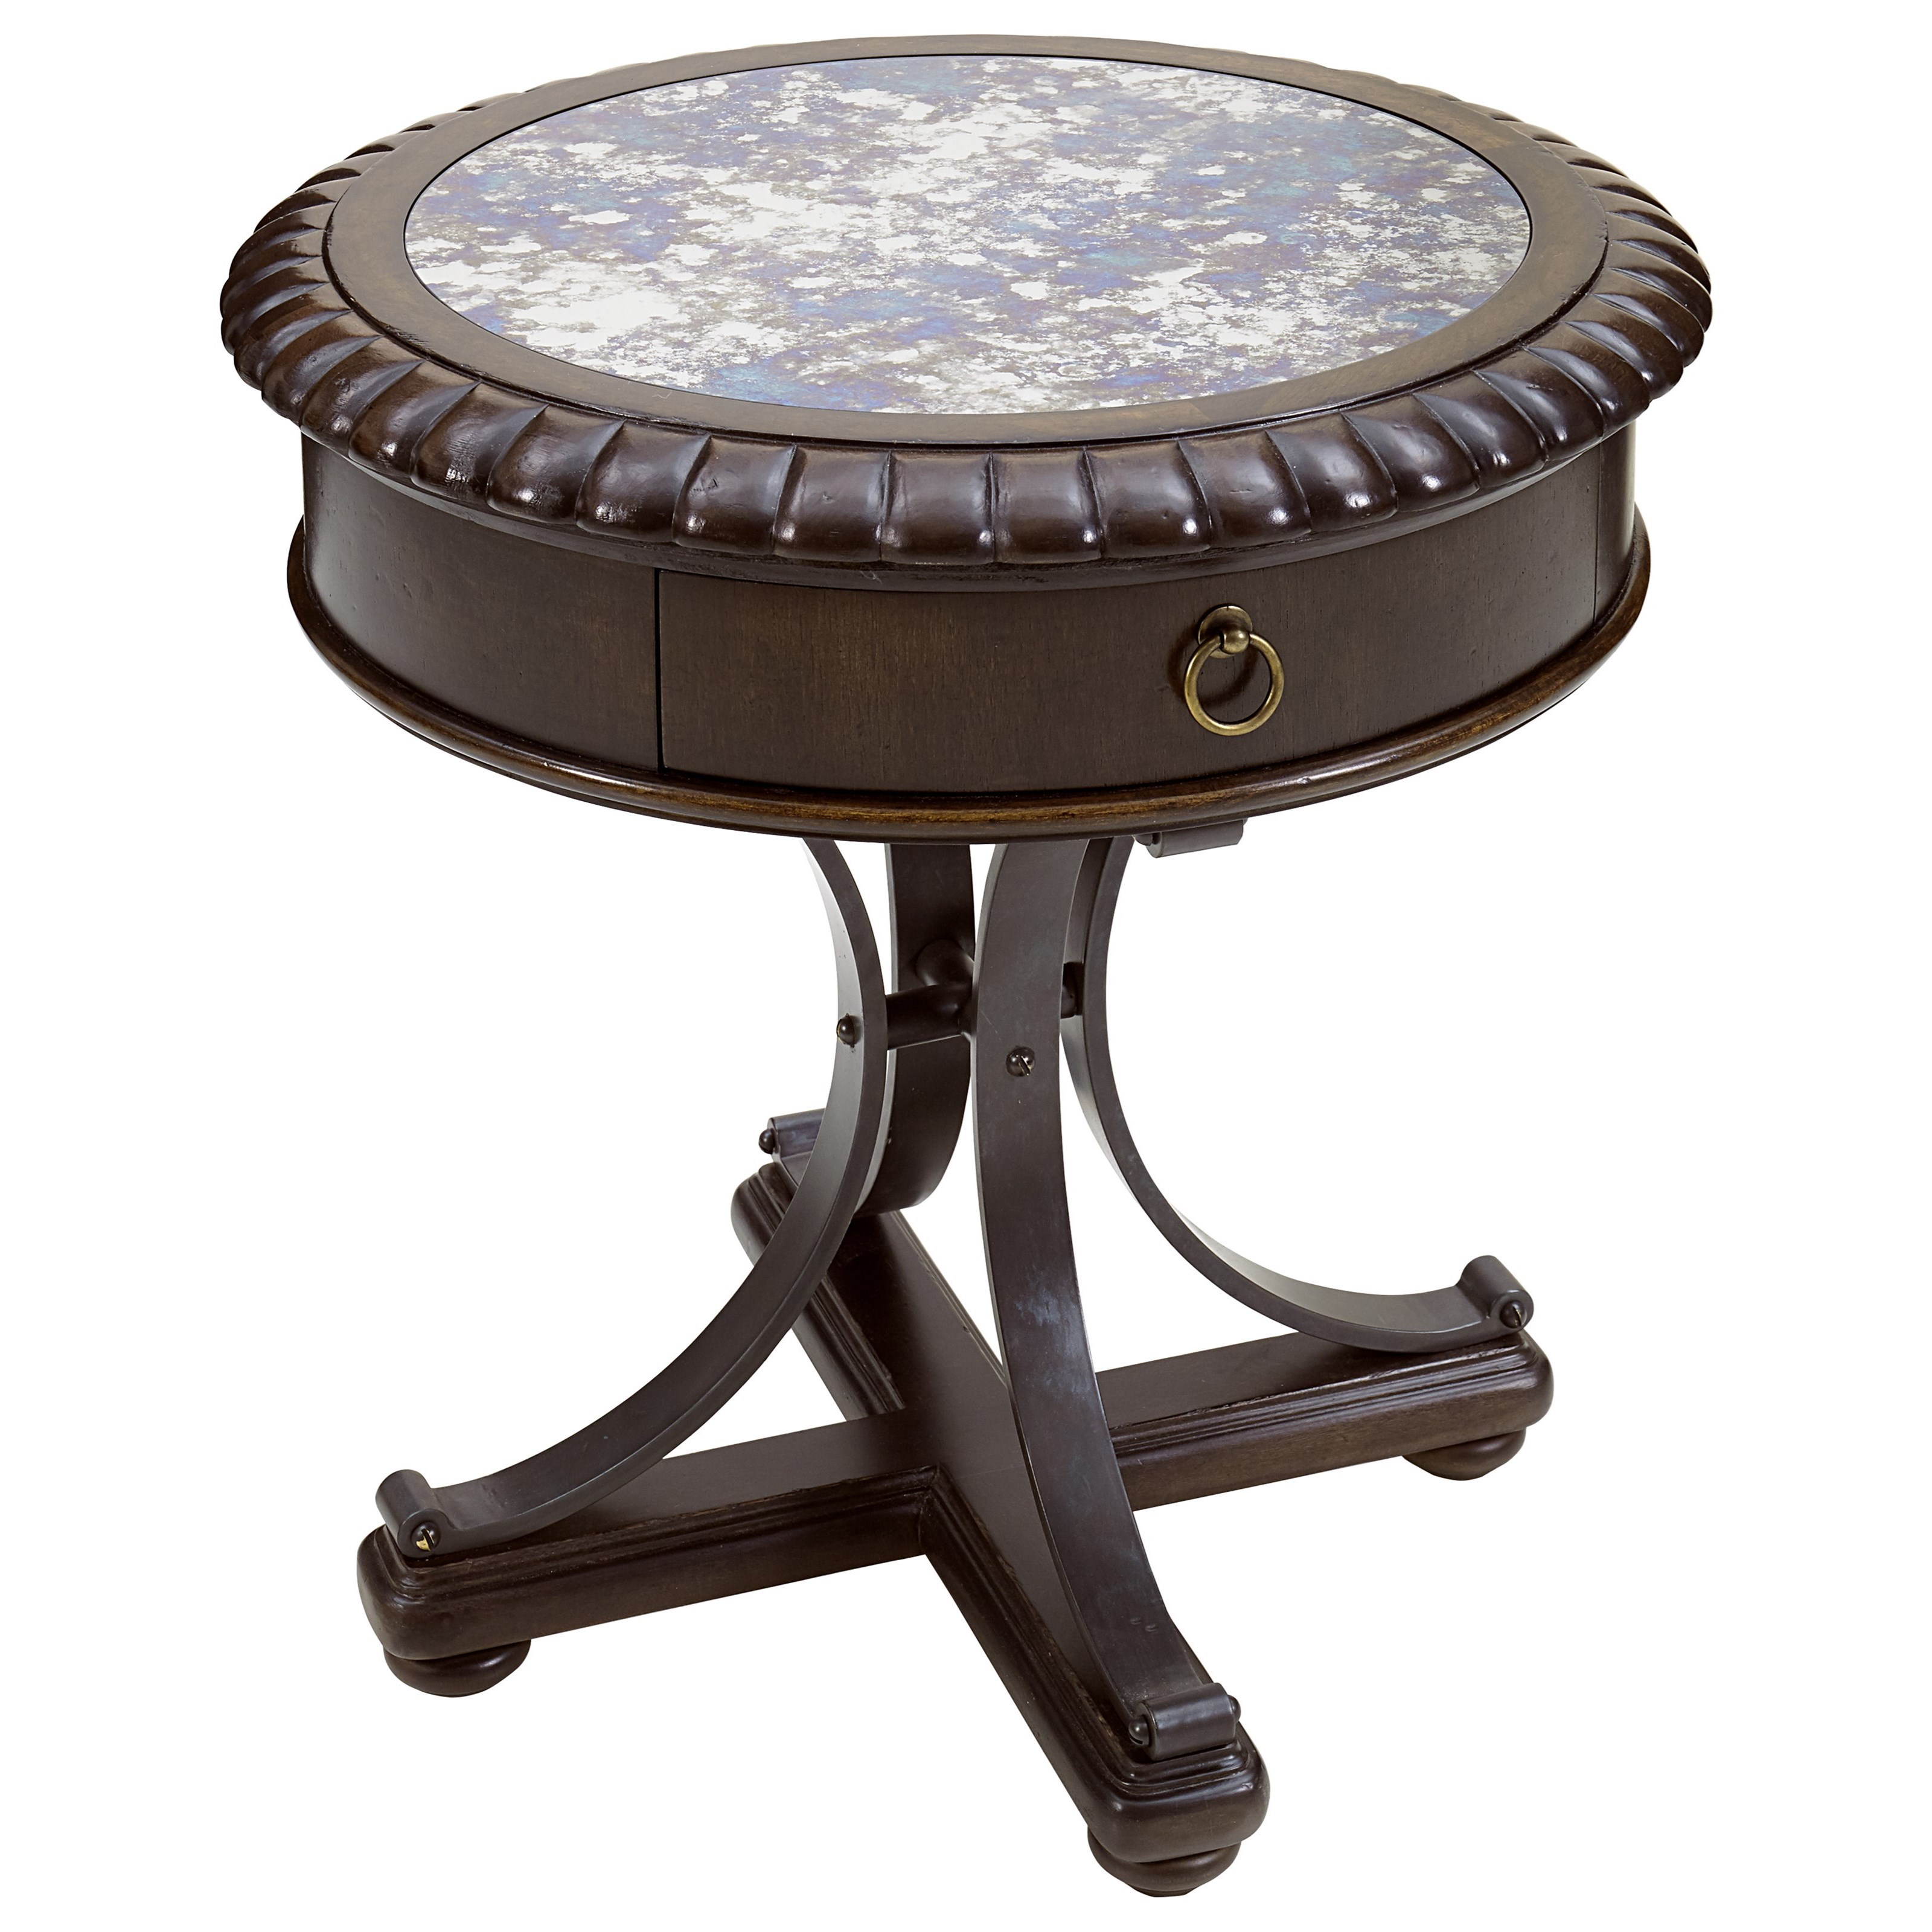 American Chapter Briarwood Lamp Table by Klien Furniture at Sprintz Furniture